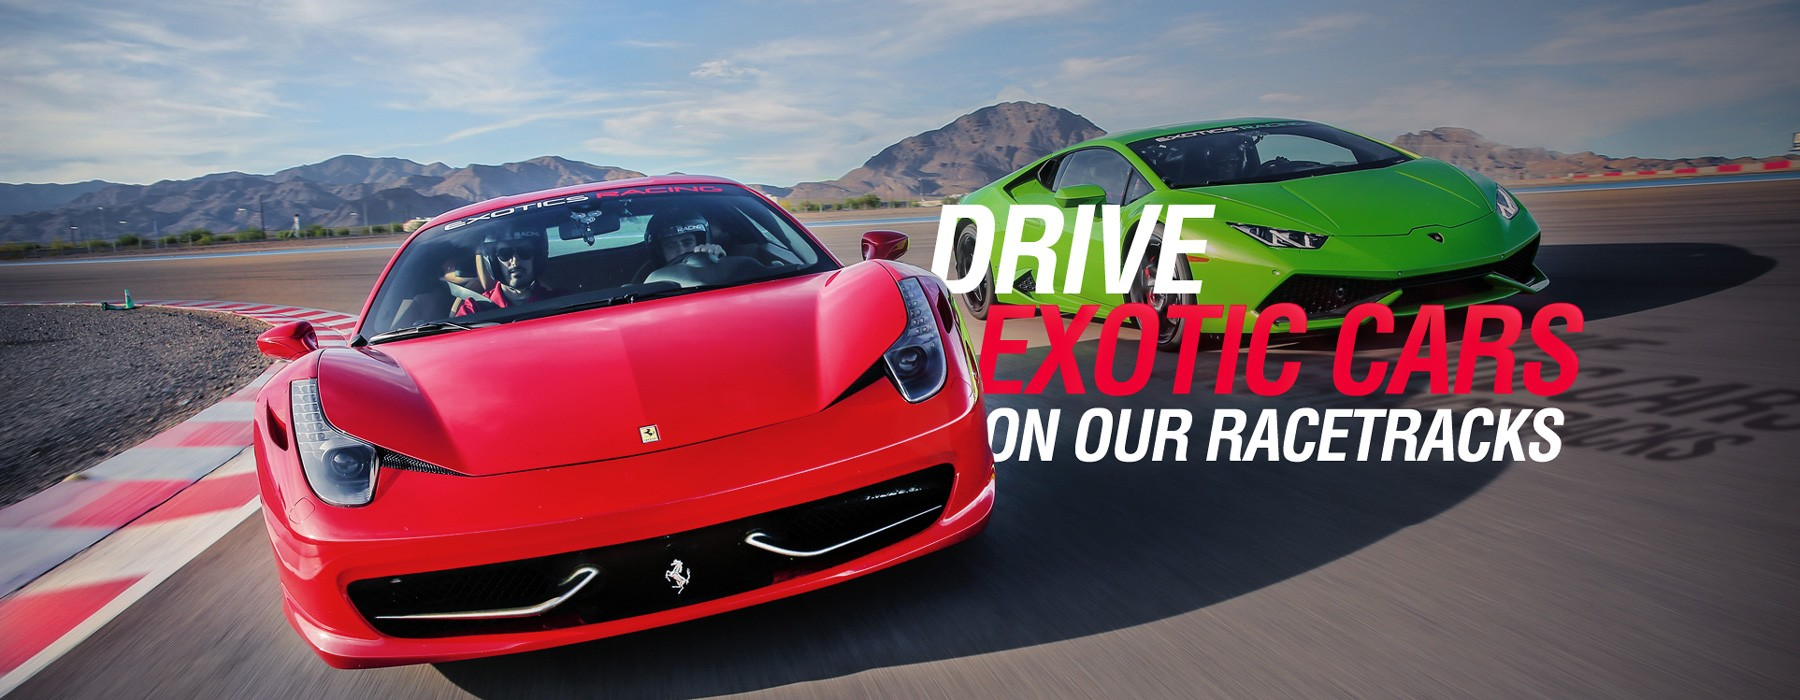 Drive Exotics Cars On Our Racetracks